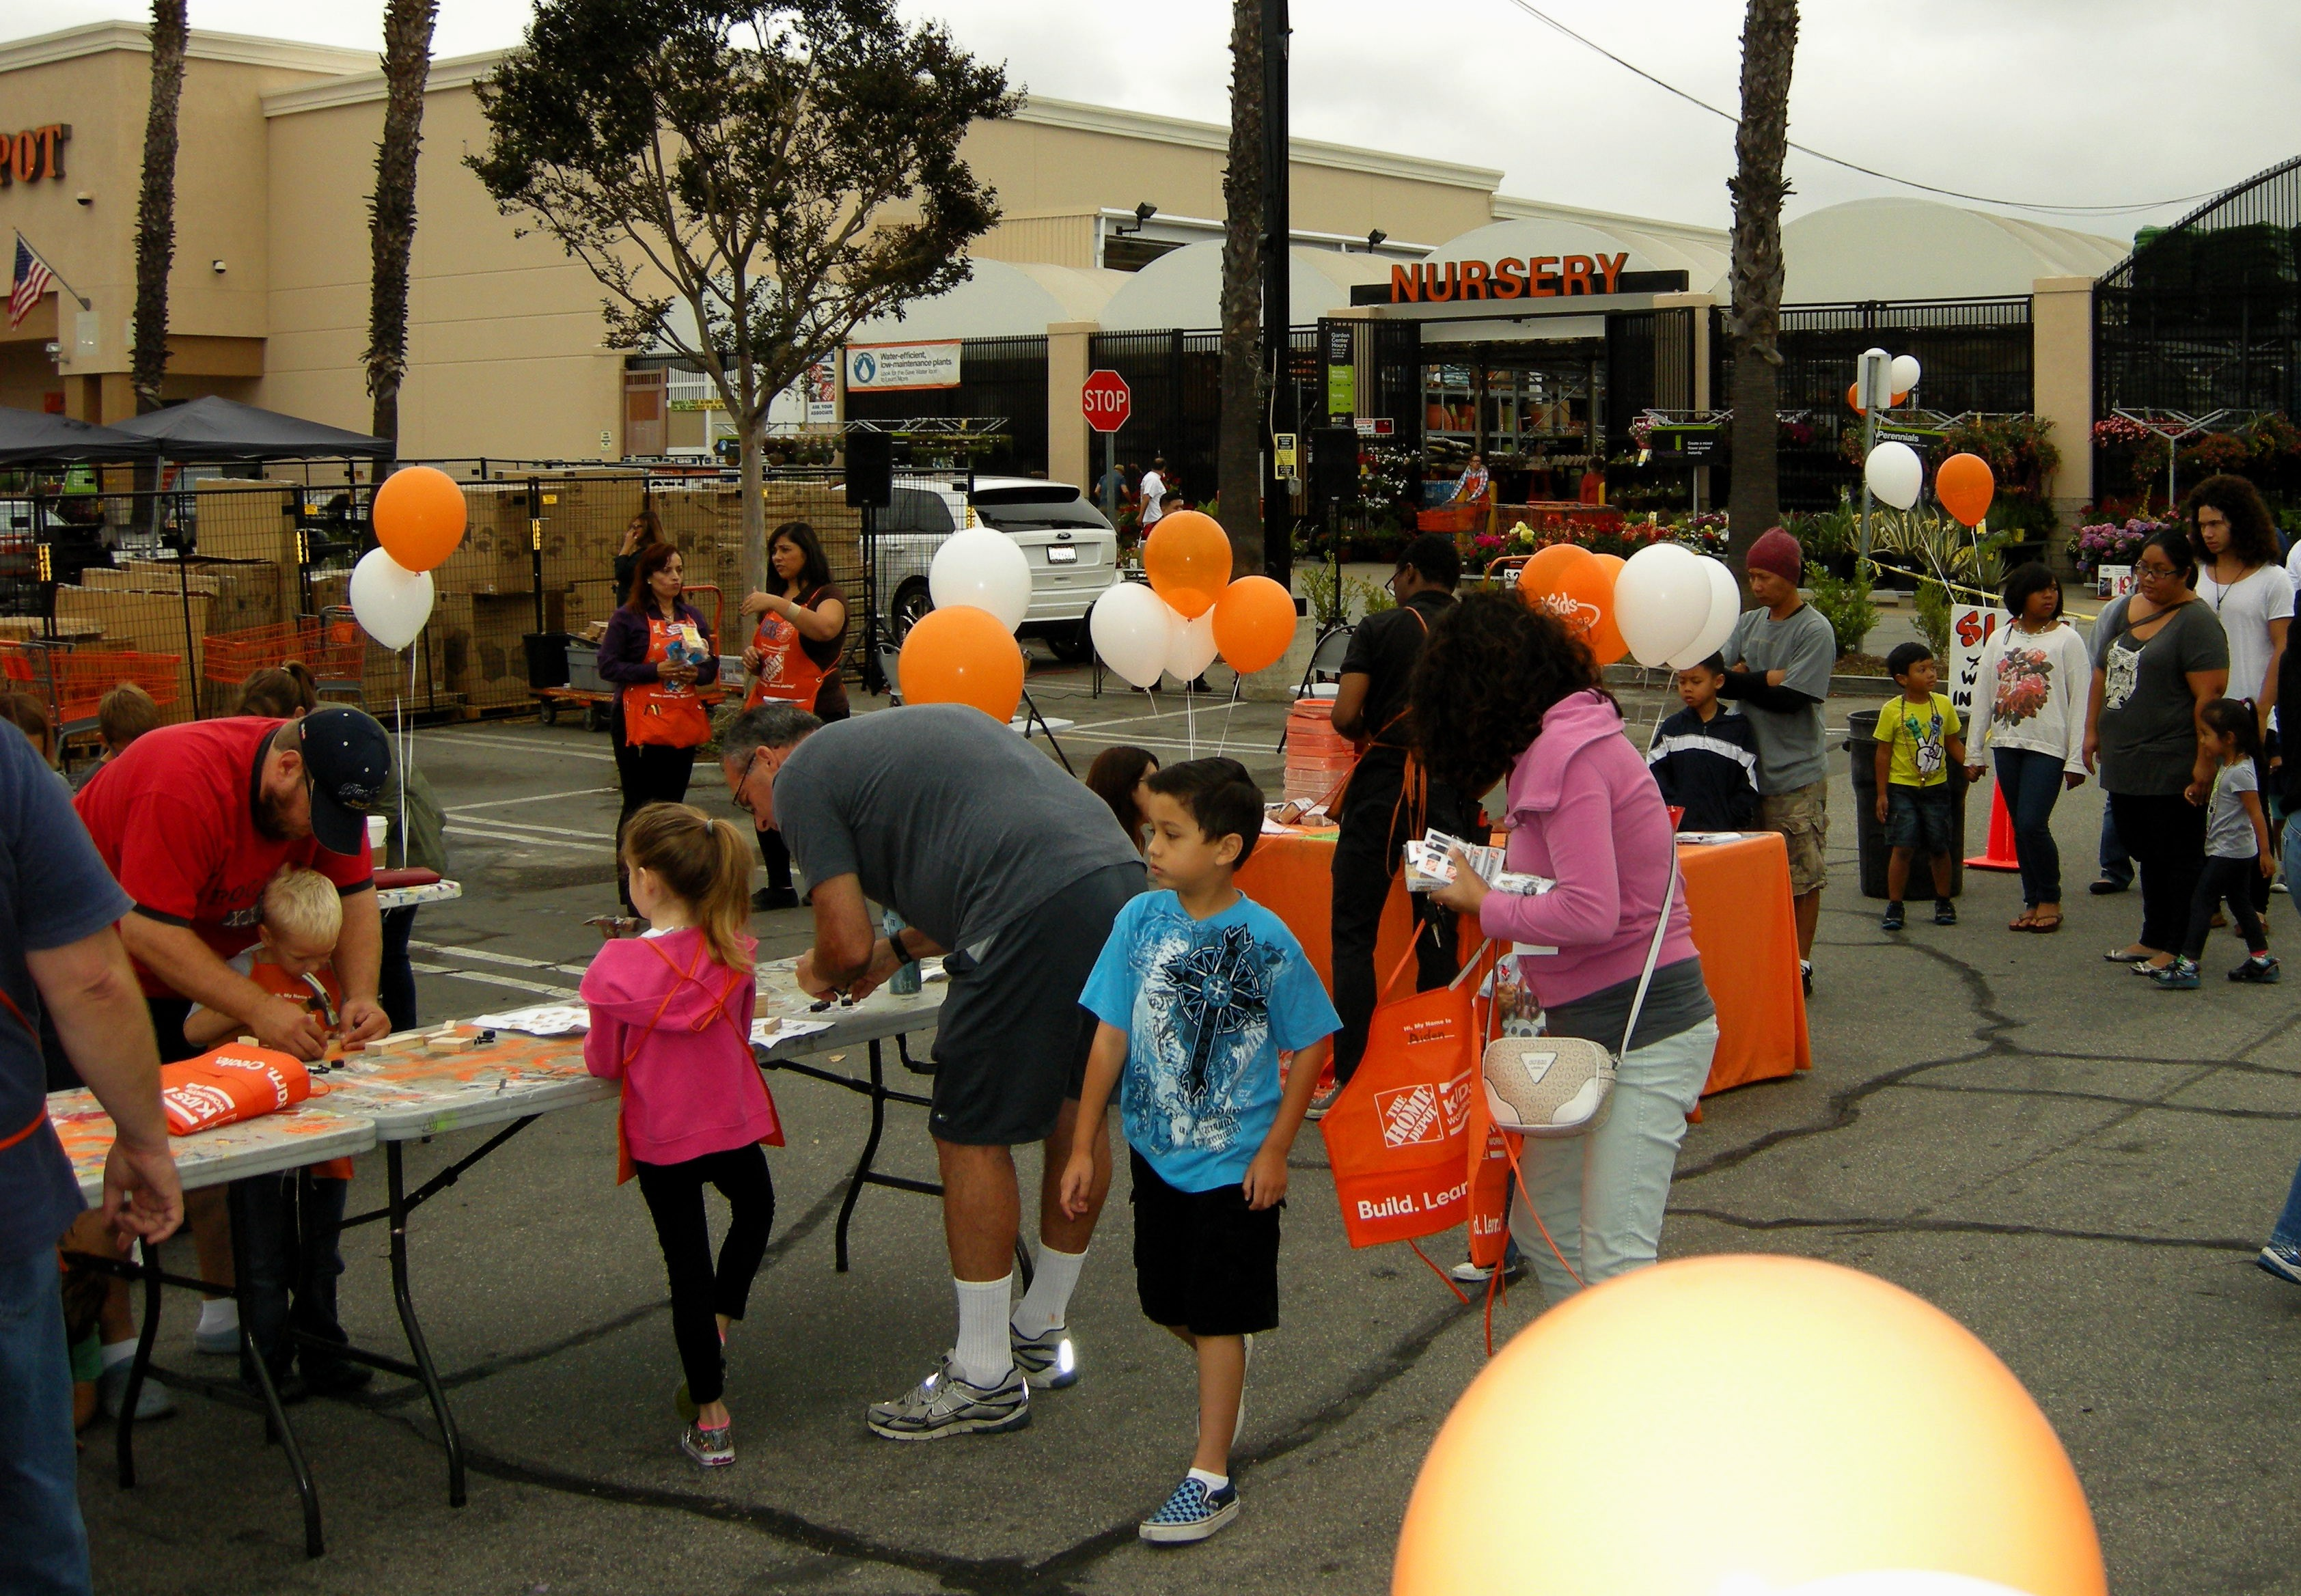 Families taking part in the Home Depot workshops